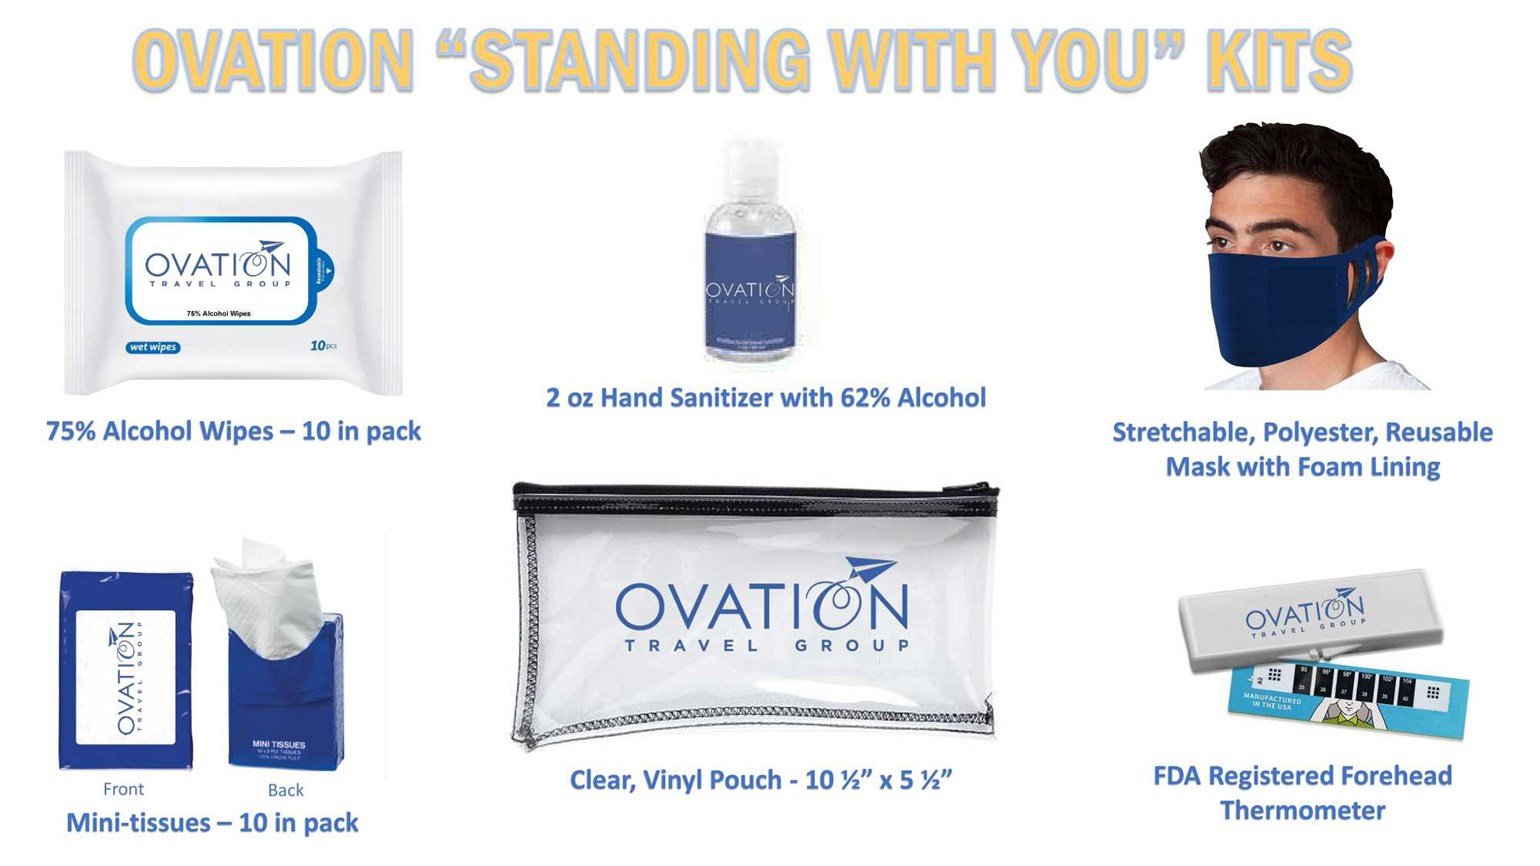 Ovation Travel Group sends corona care kits to clients